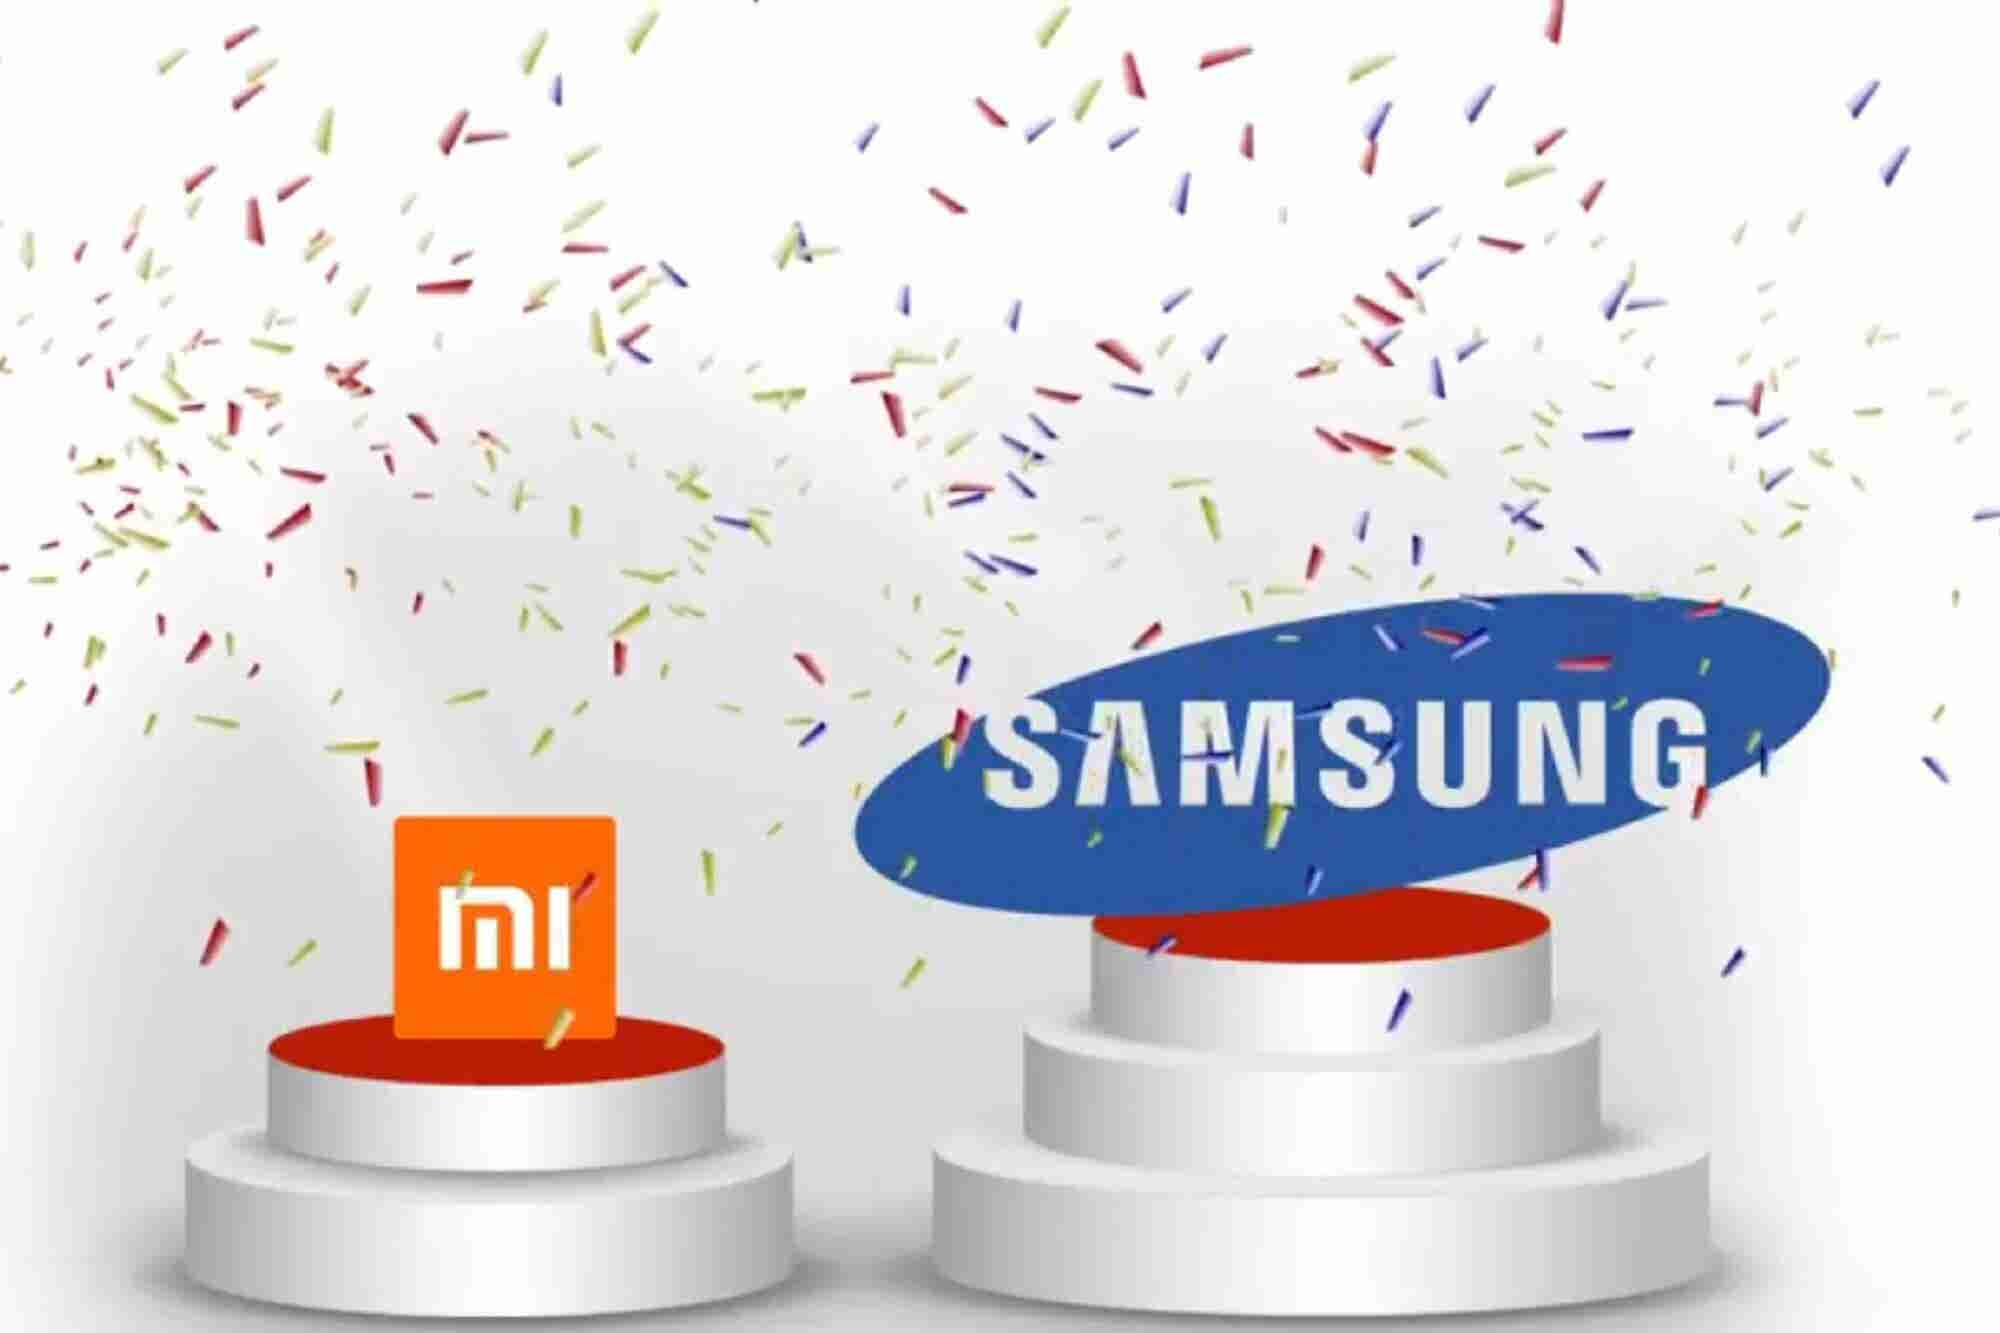 Samsung Surpasses Xiaomi & Fake Elon Musks, Beware! 4 Things to Know Today